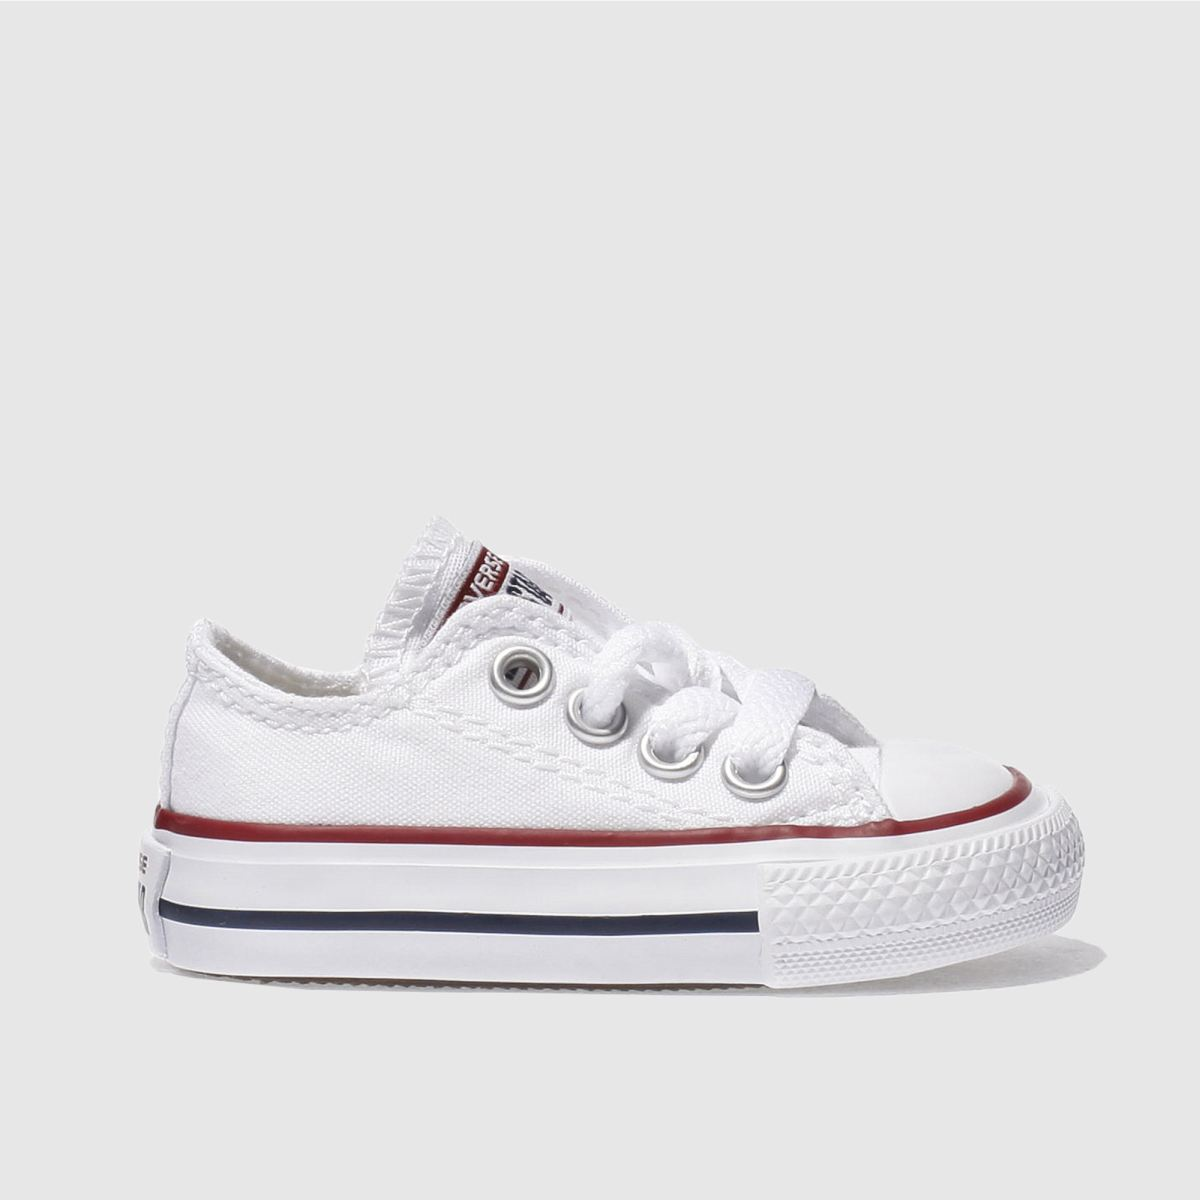 converse white all star lo Boys Toddler Trainers